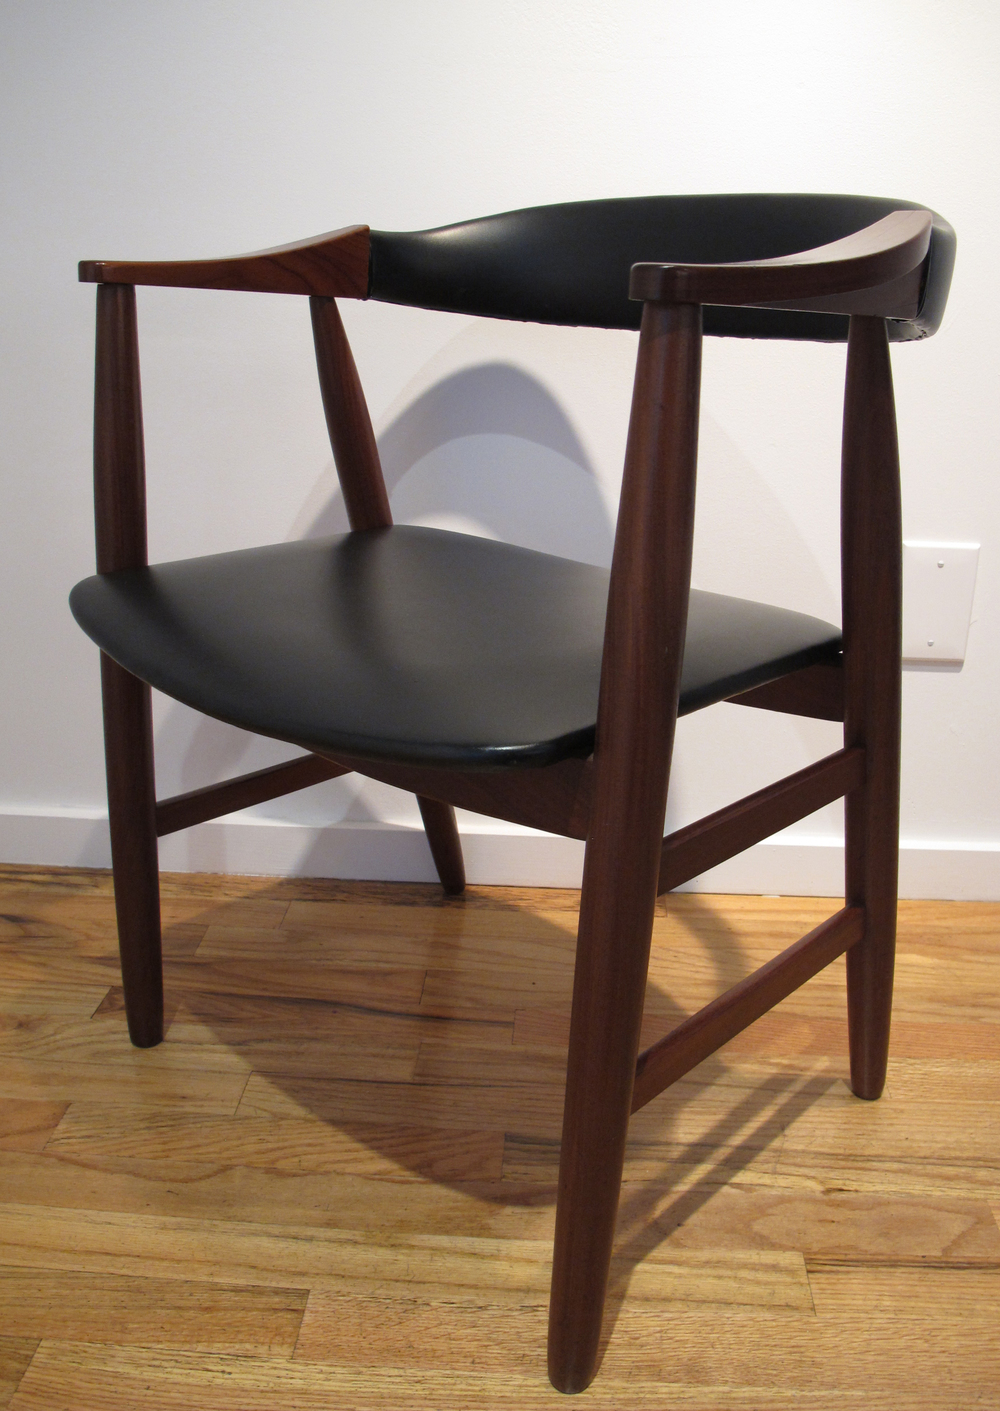 DANISH MODERN WALNUT ARMCHAIR AFTER ERIK KIRKEGAARD